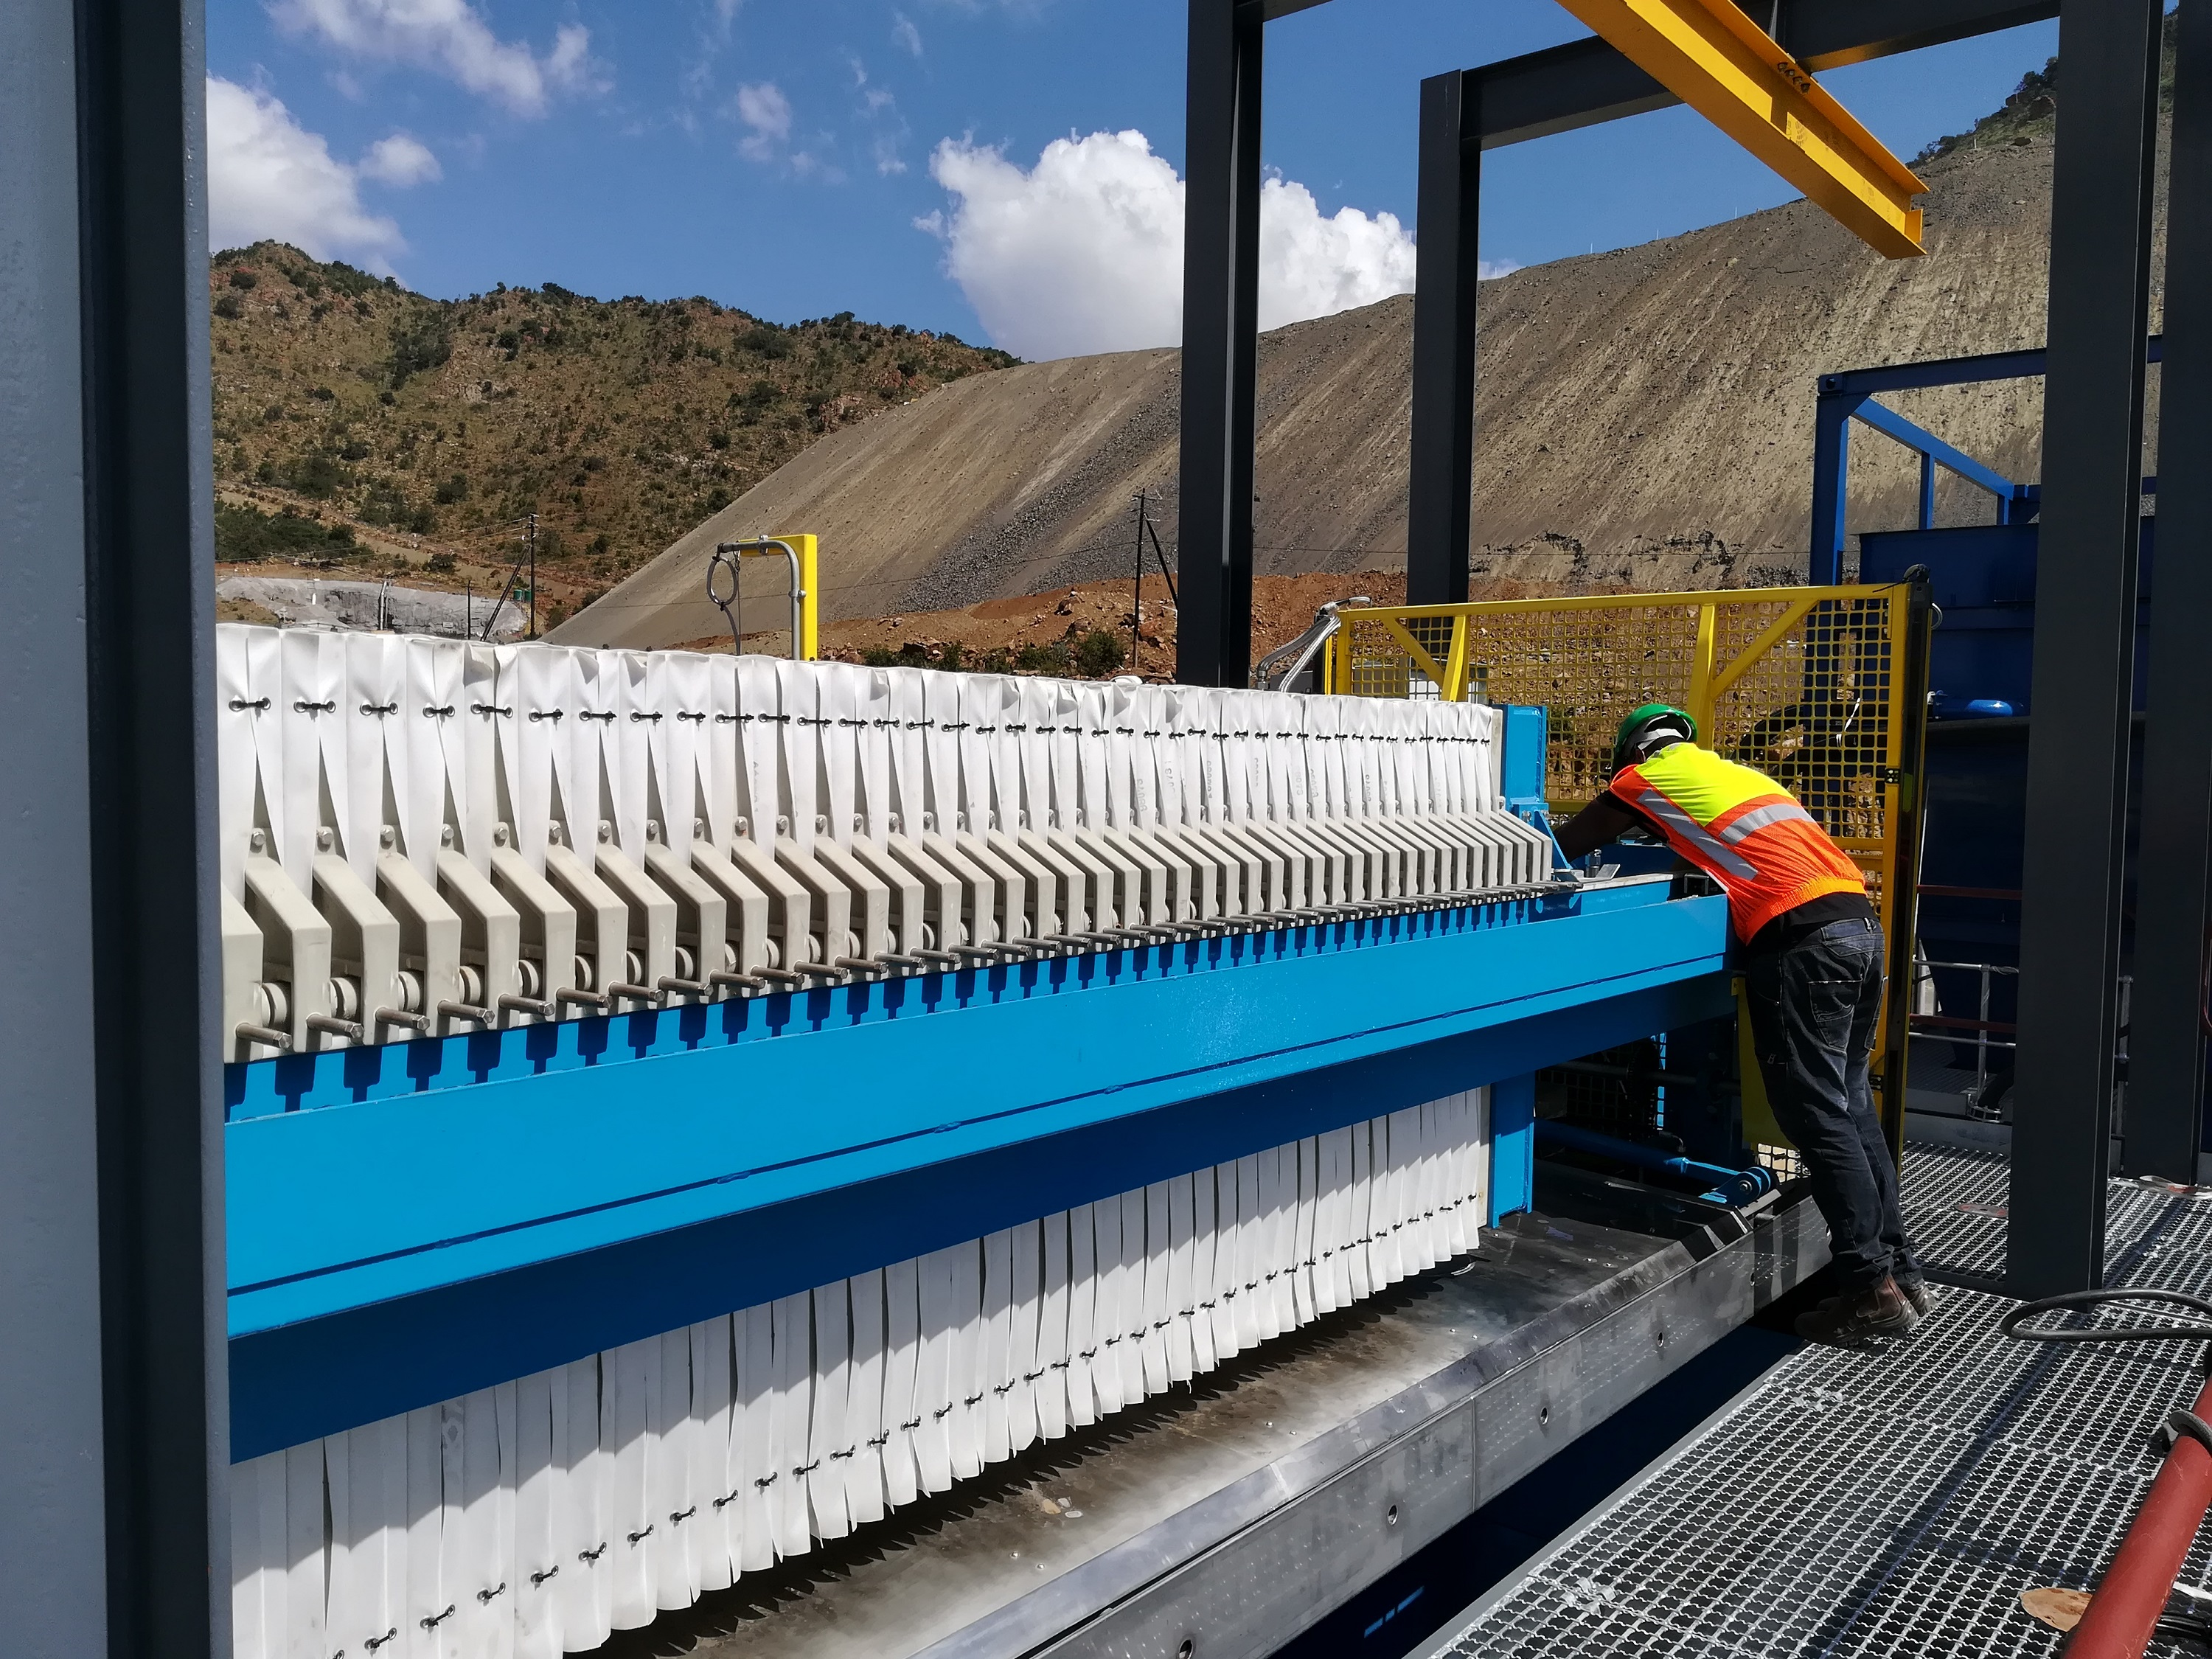 Chromite and coal operations improve tailings water recovery with Multotec filter press technology - International Mining